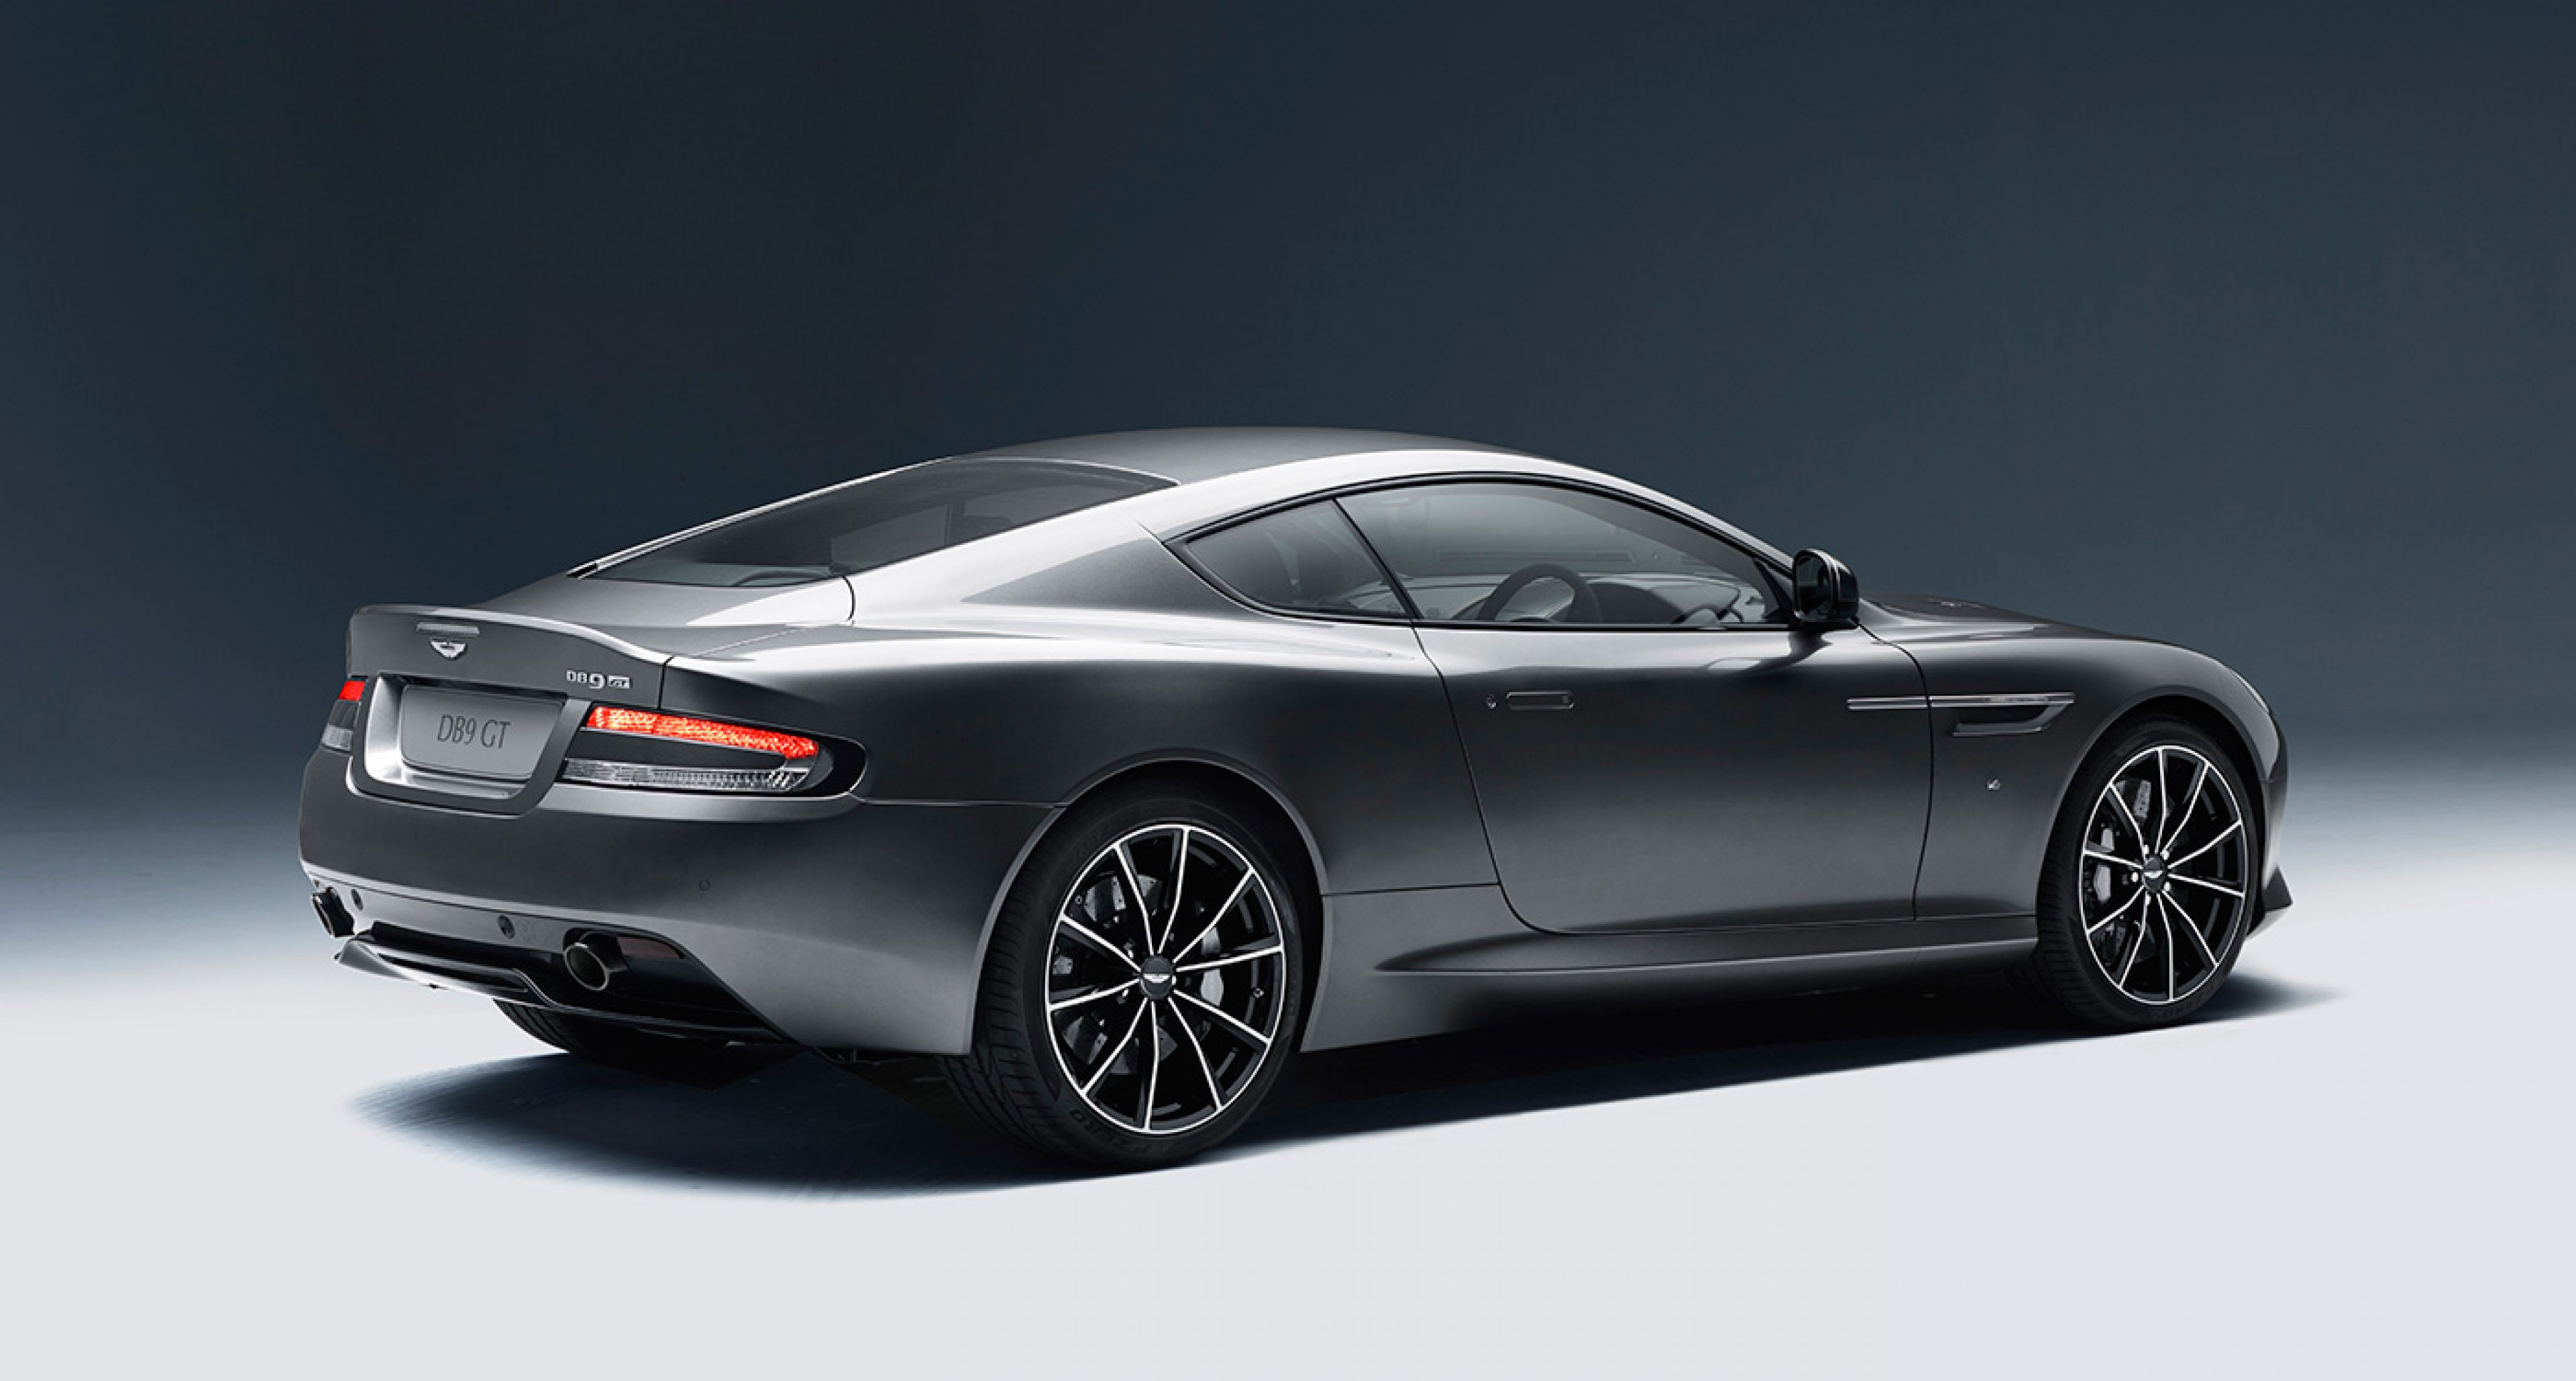 Superb Will The Aston Martin DB9 GT Become The Best DB9 Ever? | Classic Driver  Magazine